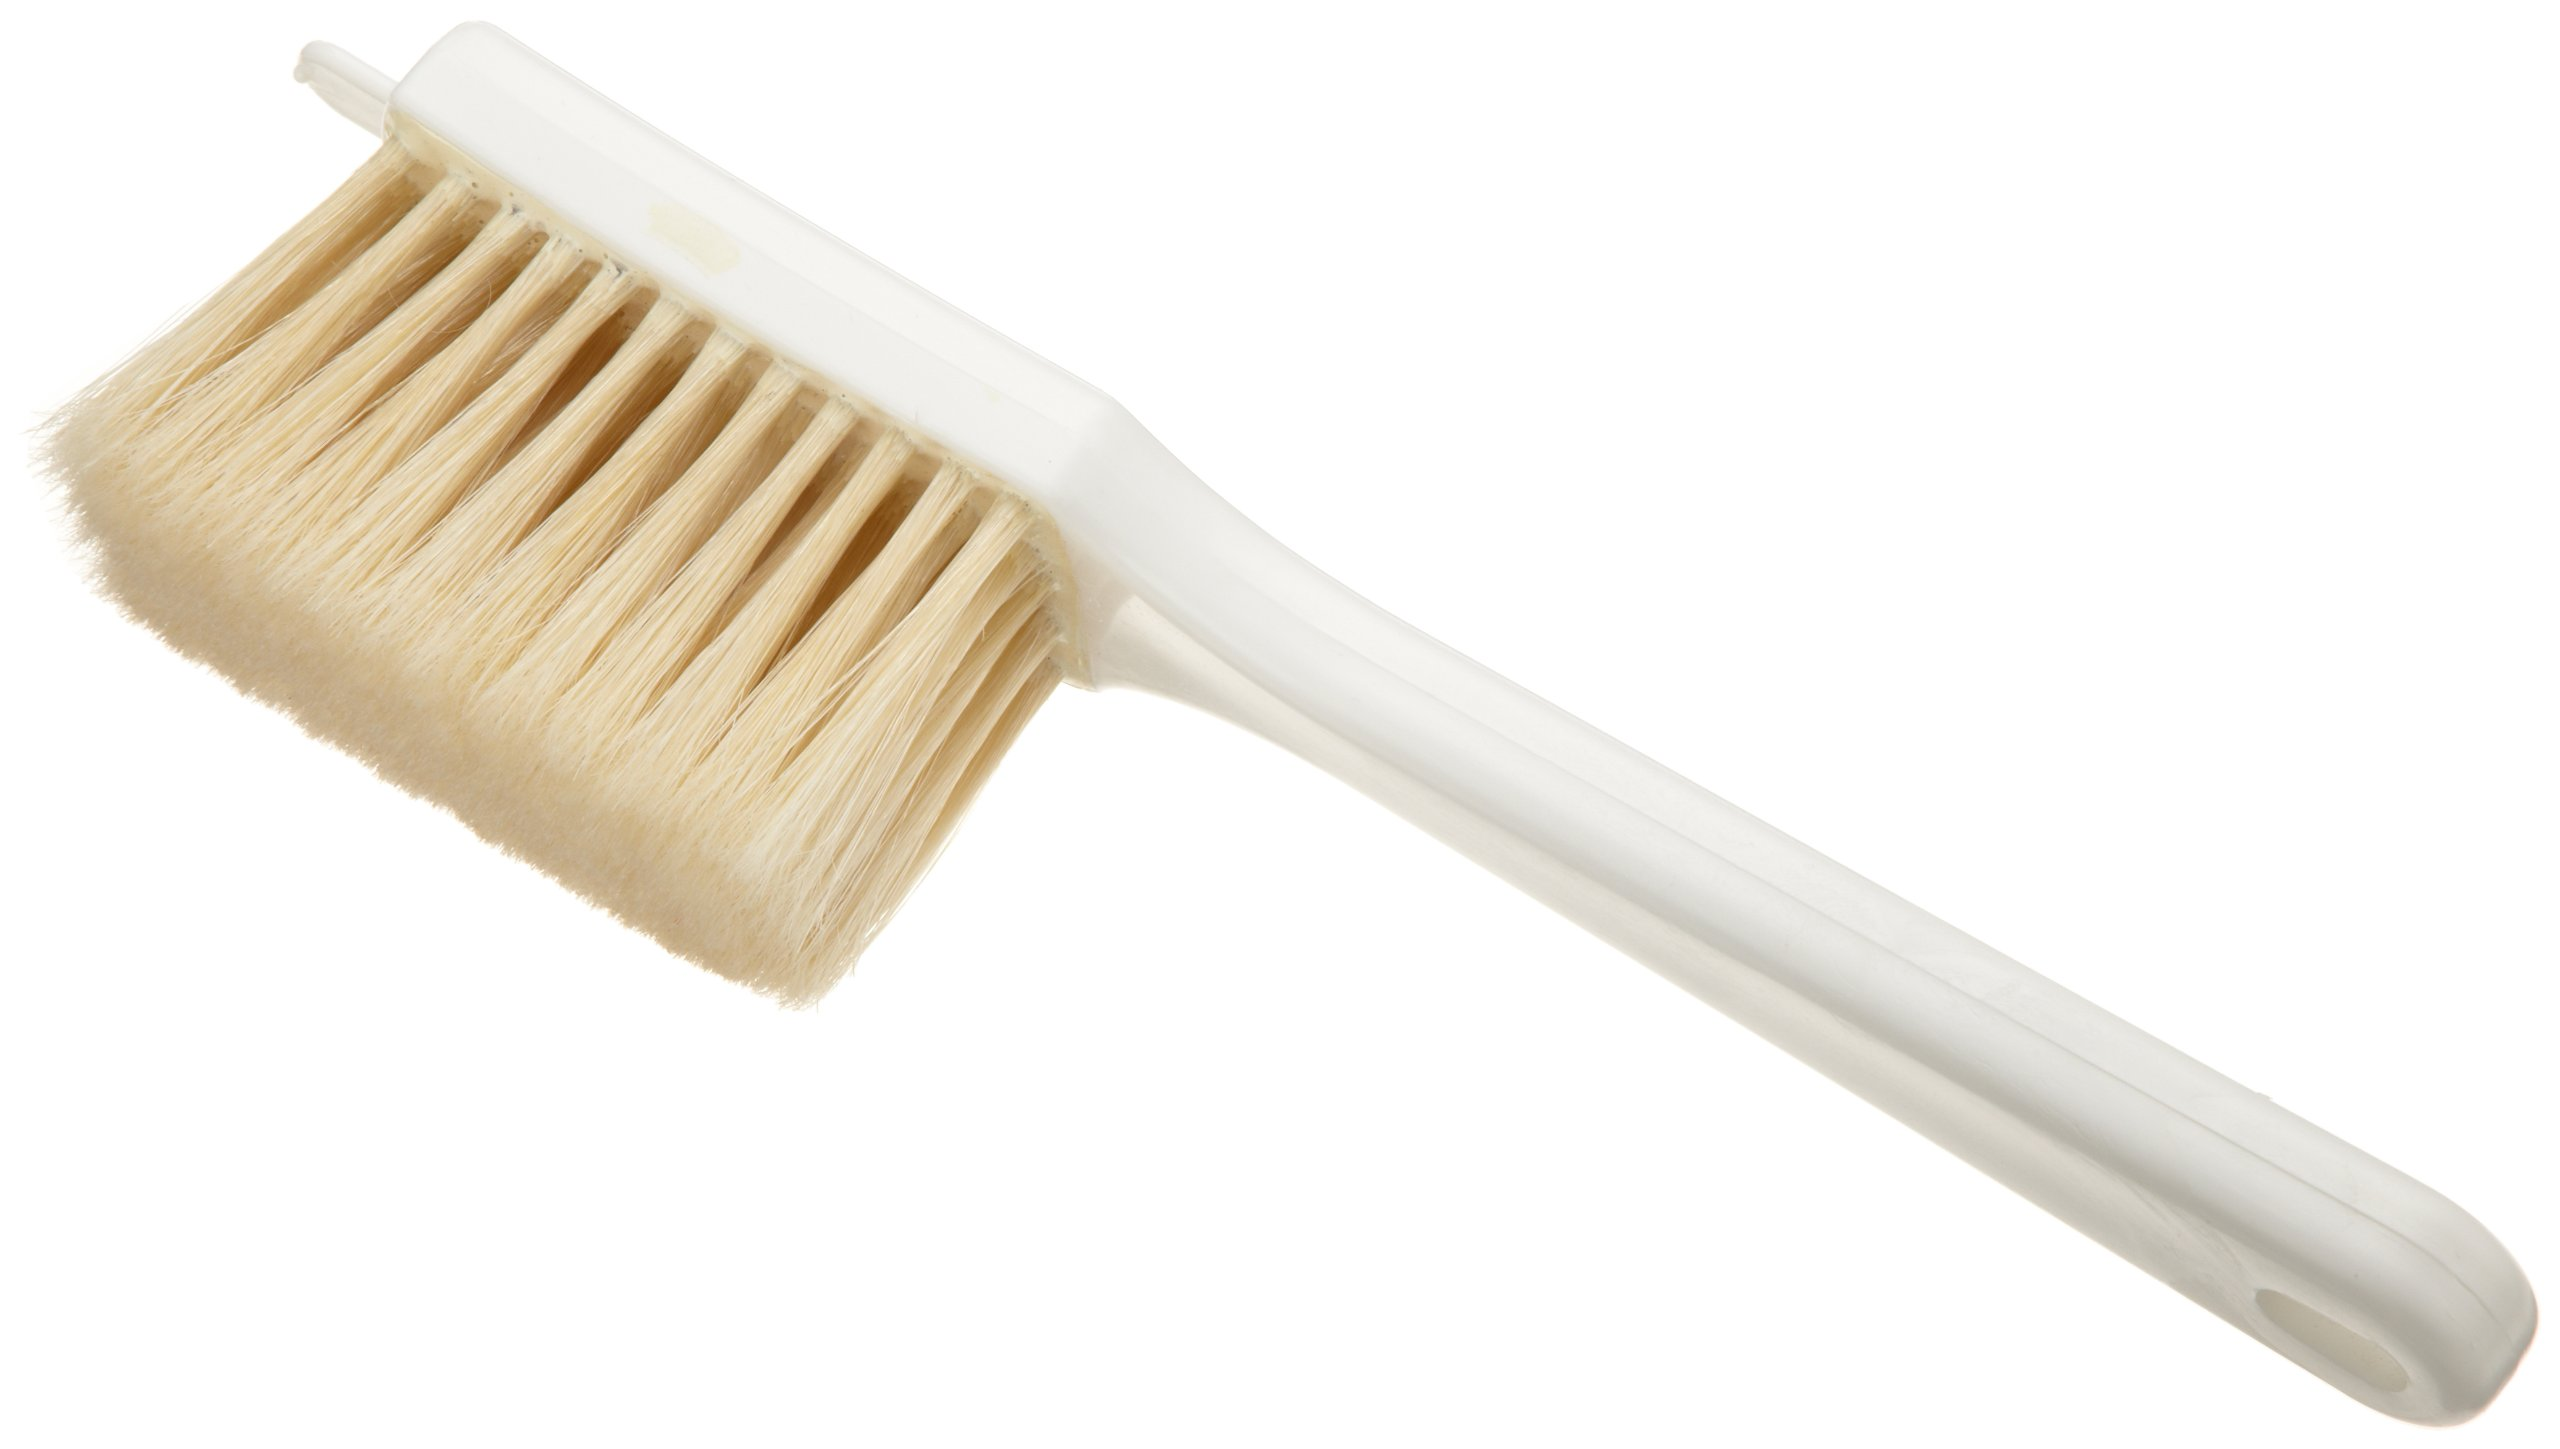 Ateco 1624 Icing Brush, 1 7/8 x 4-Inch Head with Natural White Boar Bristles & Molded Plastic Handle by Ateco